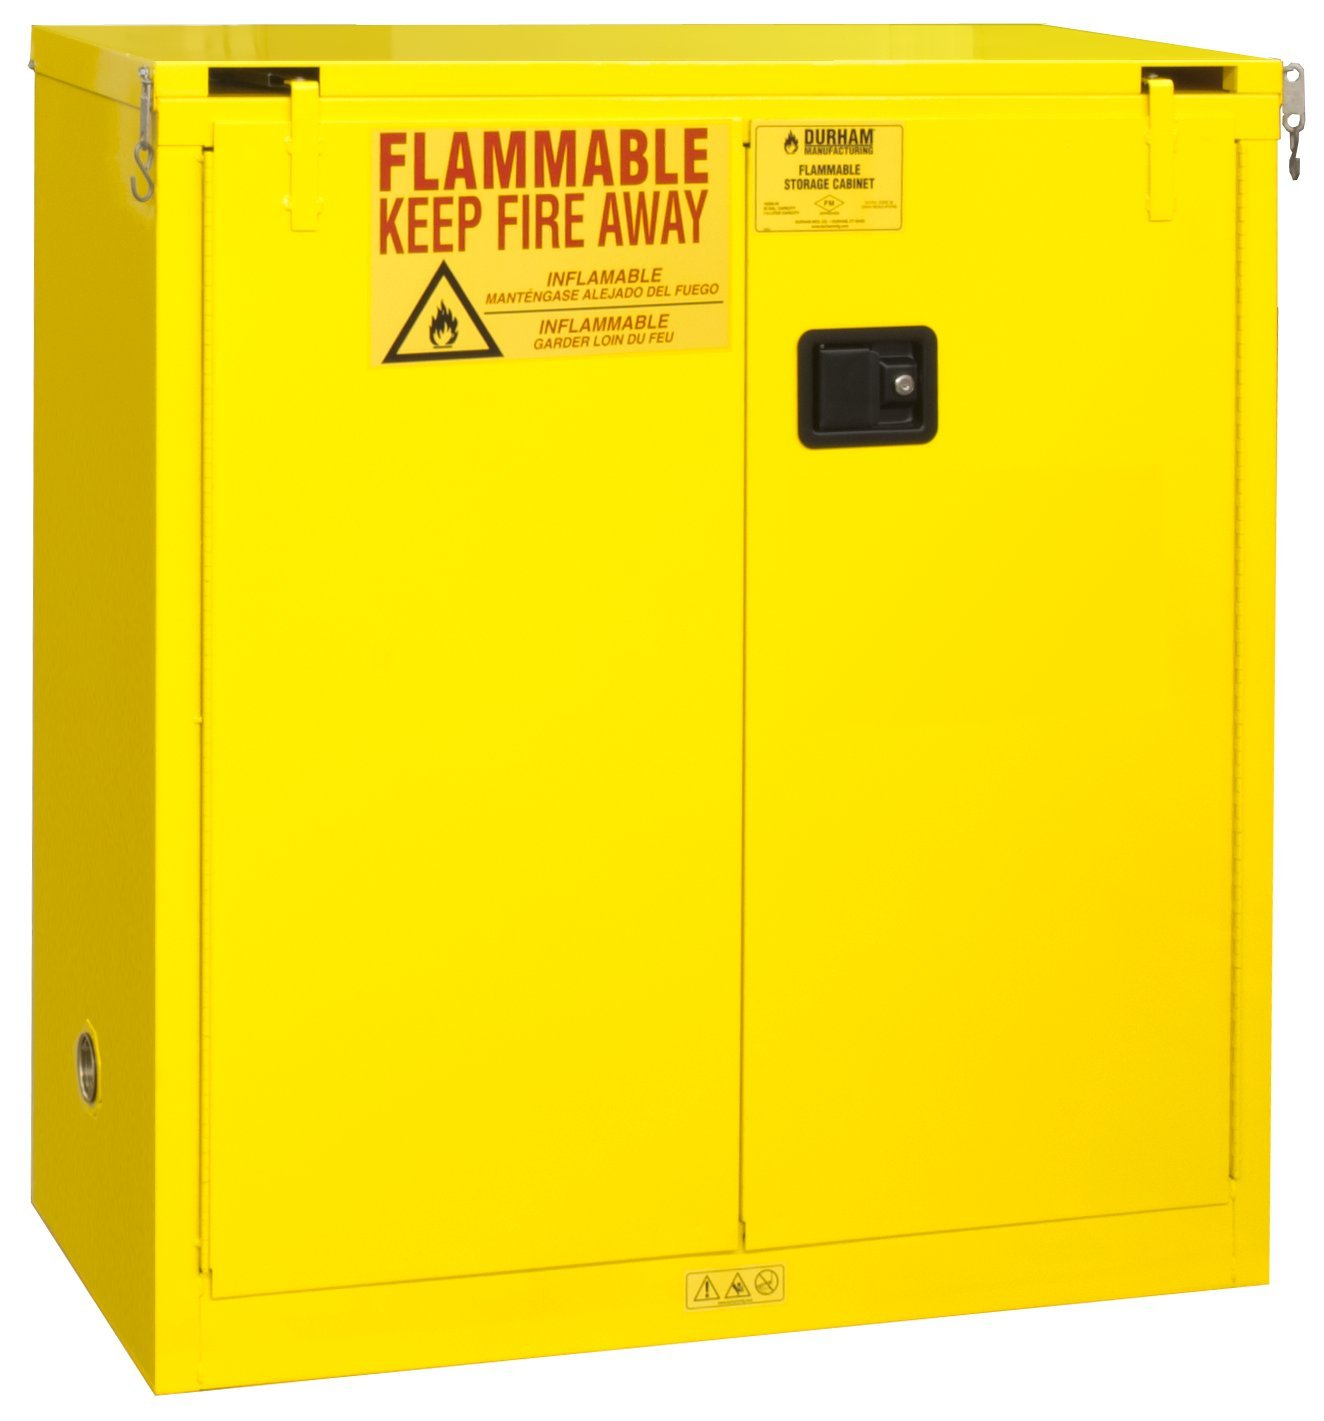 Durham FM Approved 1030S-50 Welded 16 Gauge Steel Flammable Safety Self Closing Door Cabinet, 1 Shelves, 30 gallons Capacity, 18 Length x 43 Width x 45-3/8 Height, Yellow Powder Coat Finish bqlzr 8 inch hairline finish silver security door slide flush latch bolt